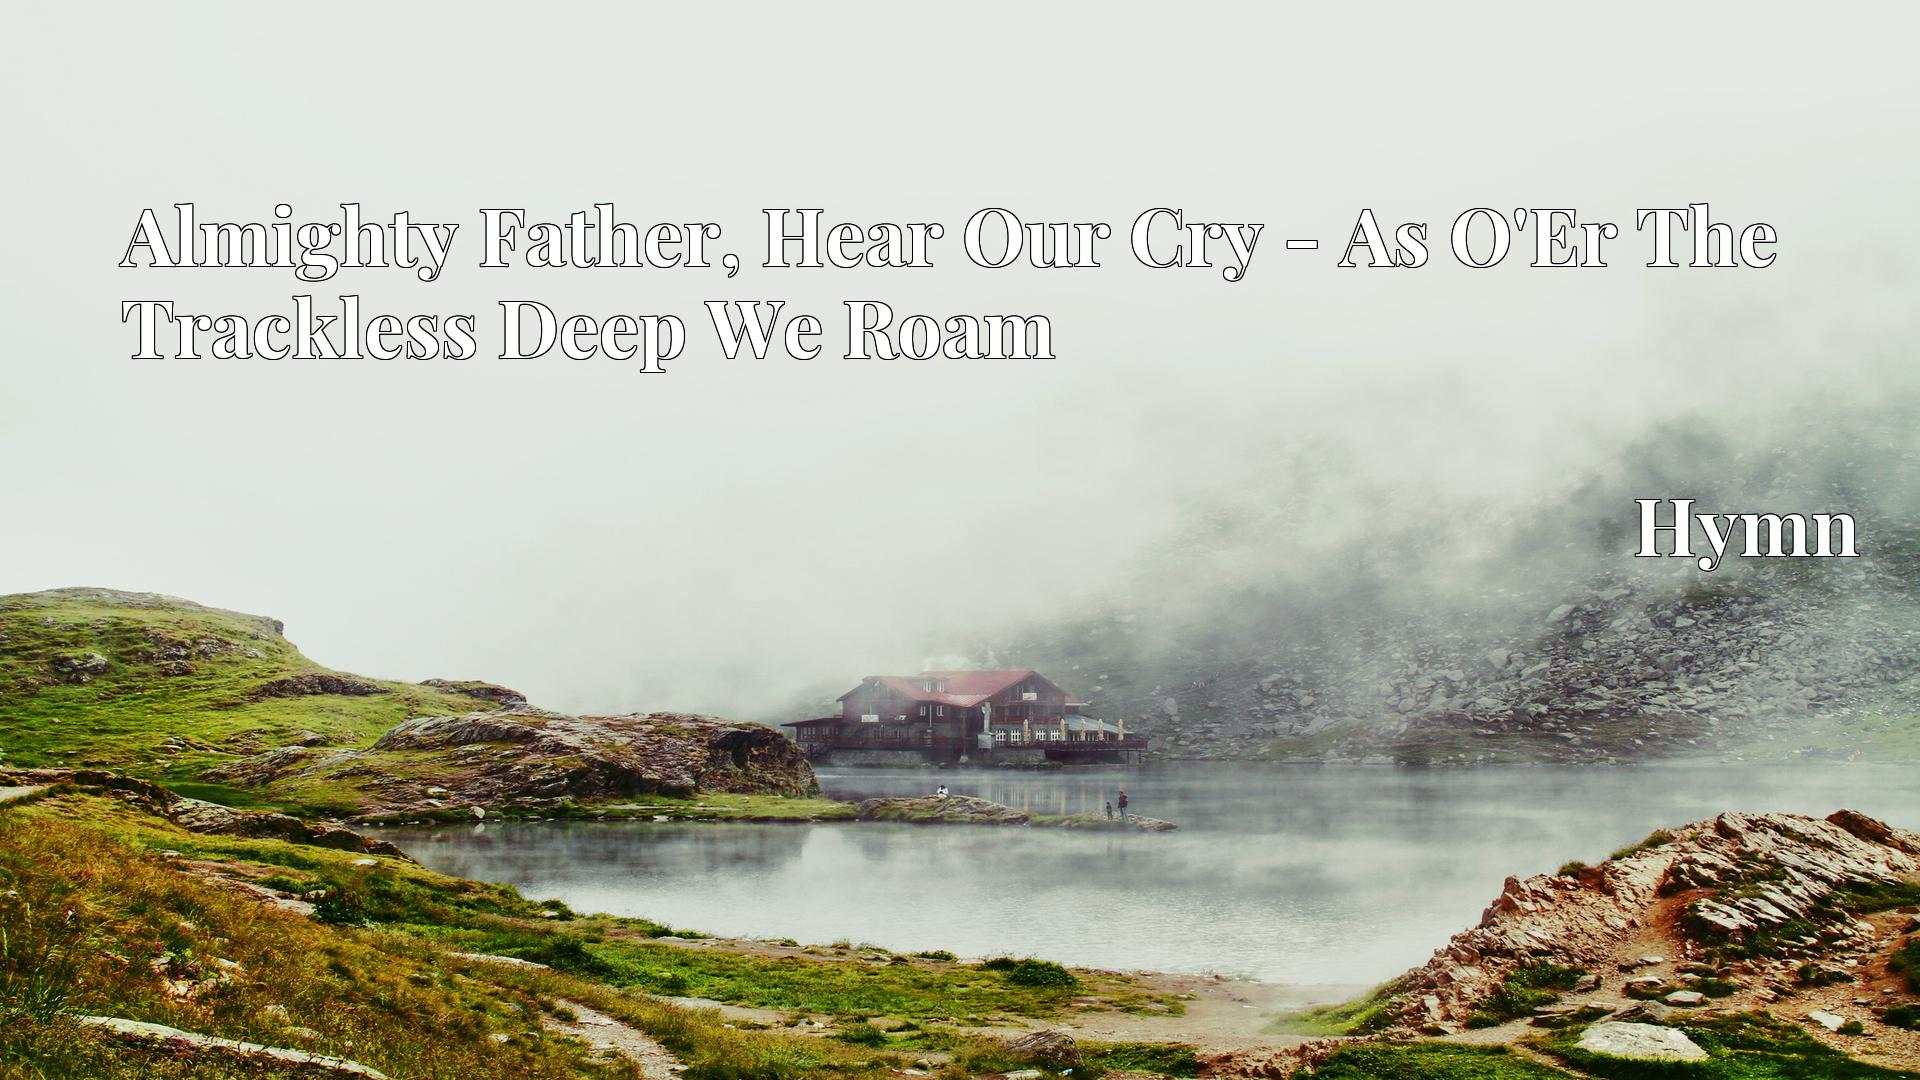 Almighty Father, Hear Our Cry - As O'Er The Trackless Deep We Roam - Hymn